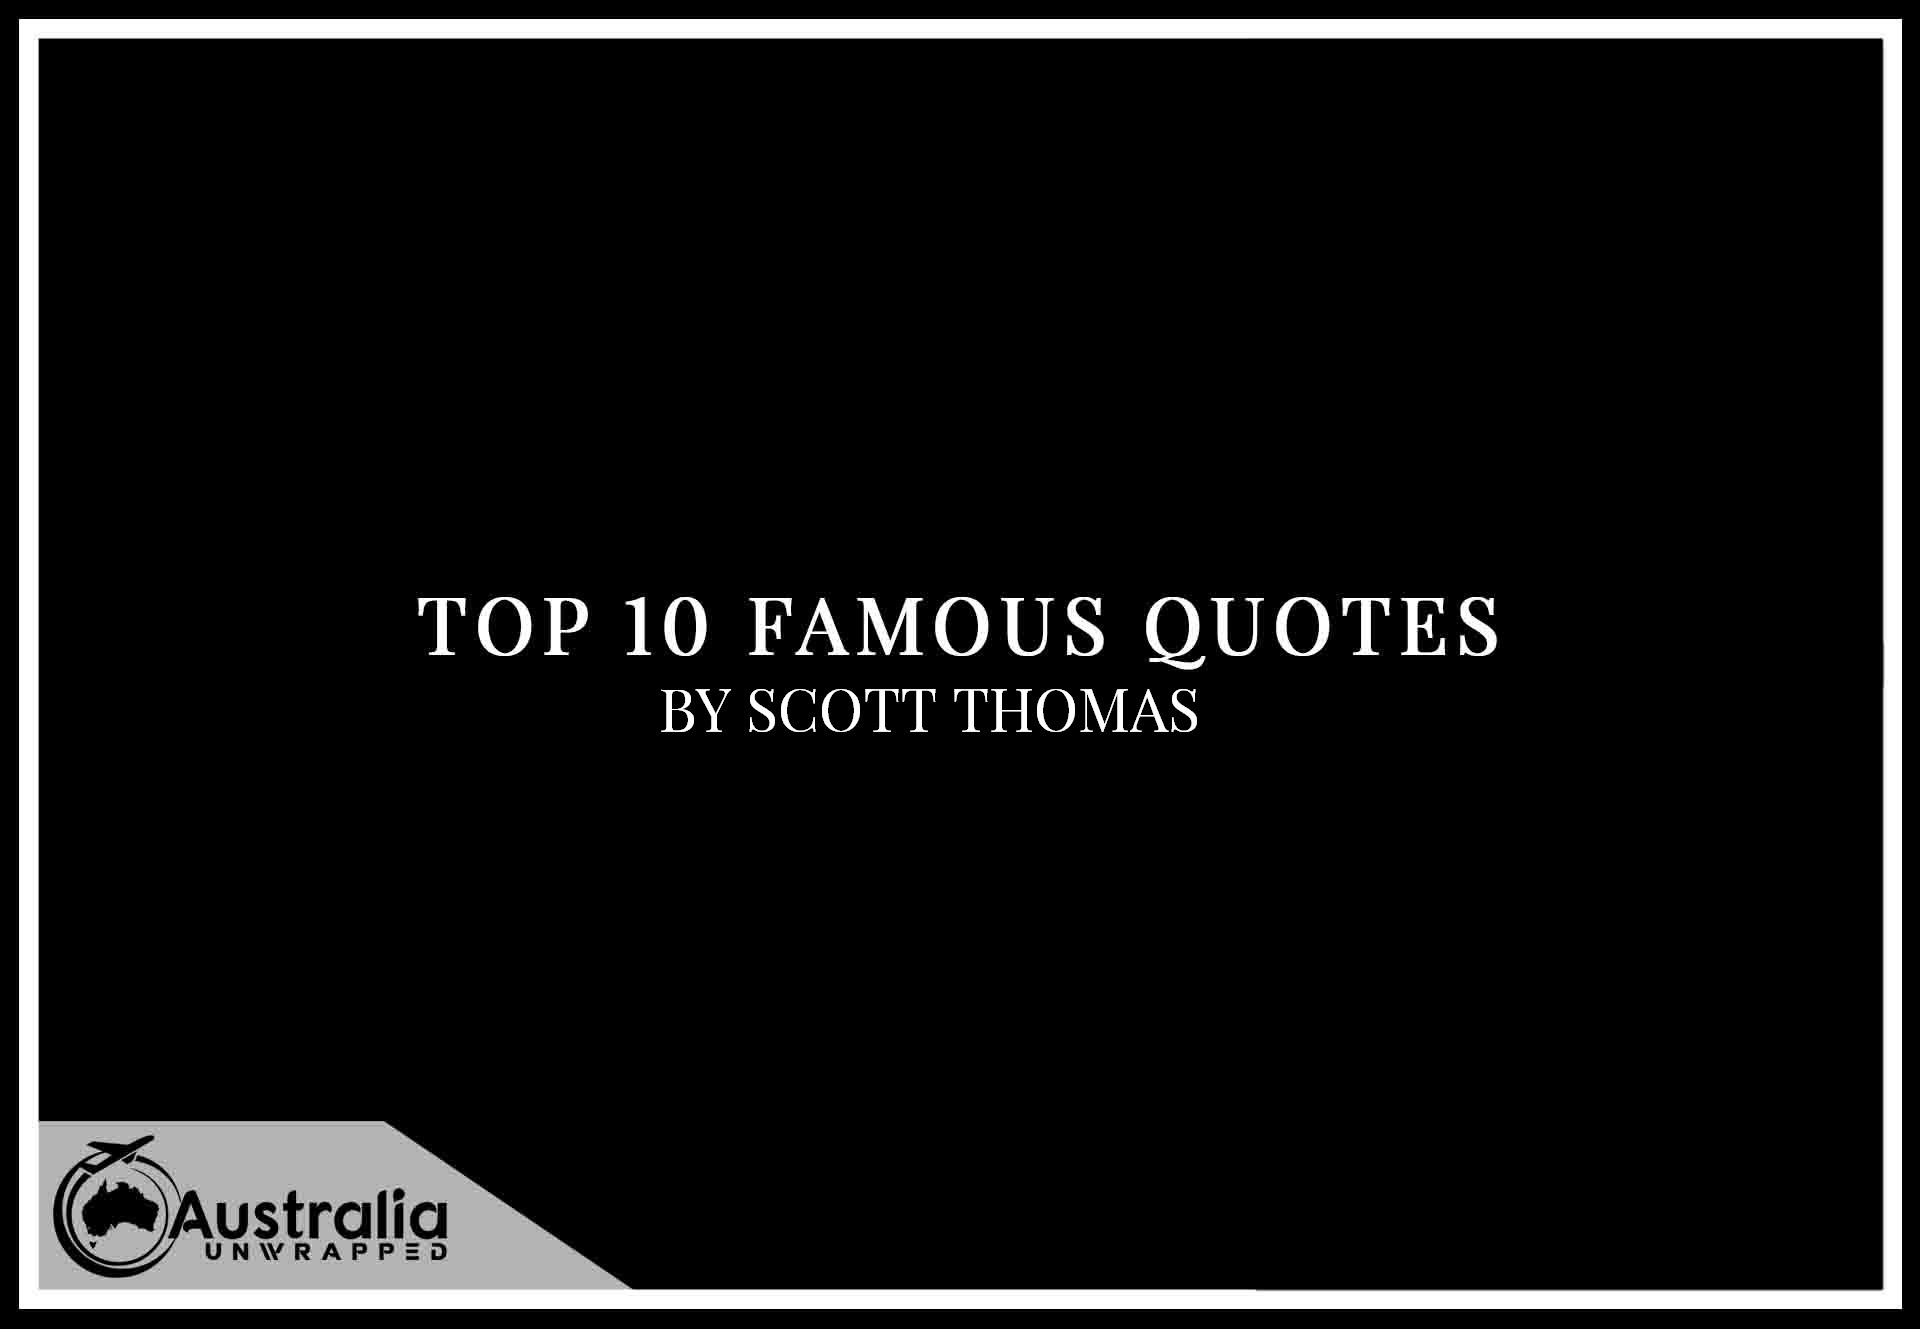 Top 10 Famous Quotes by Author Scott Thomas